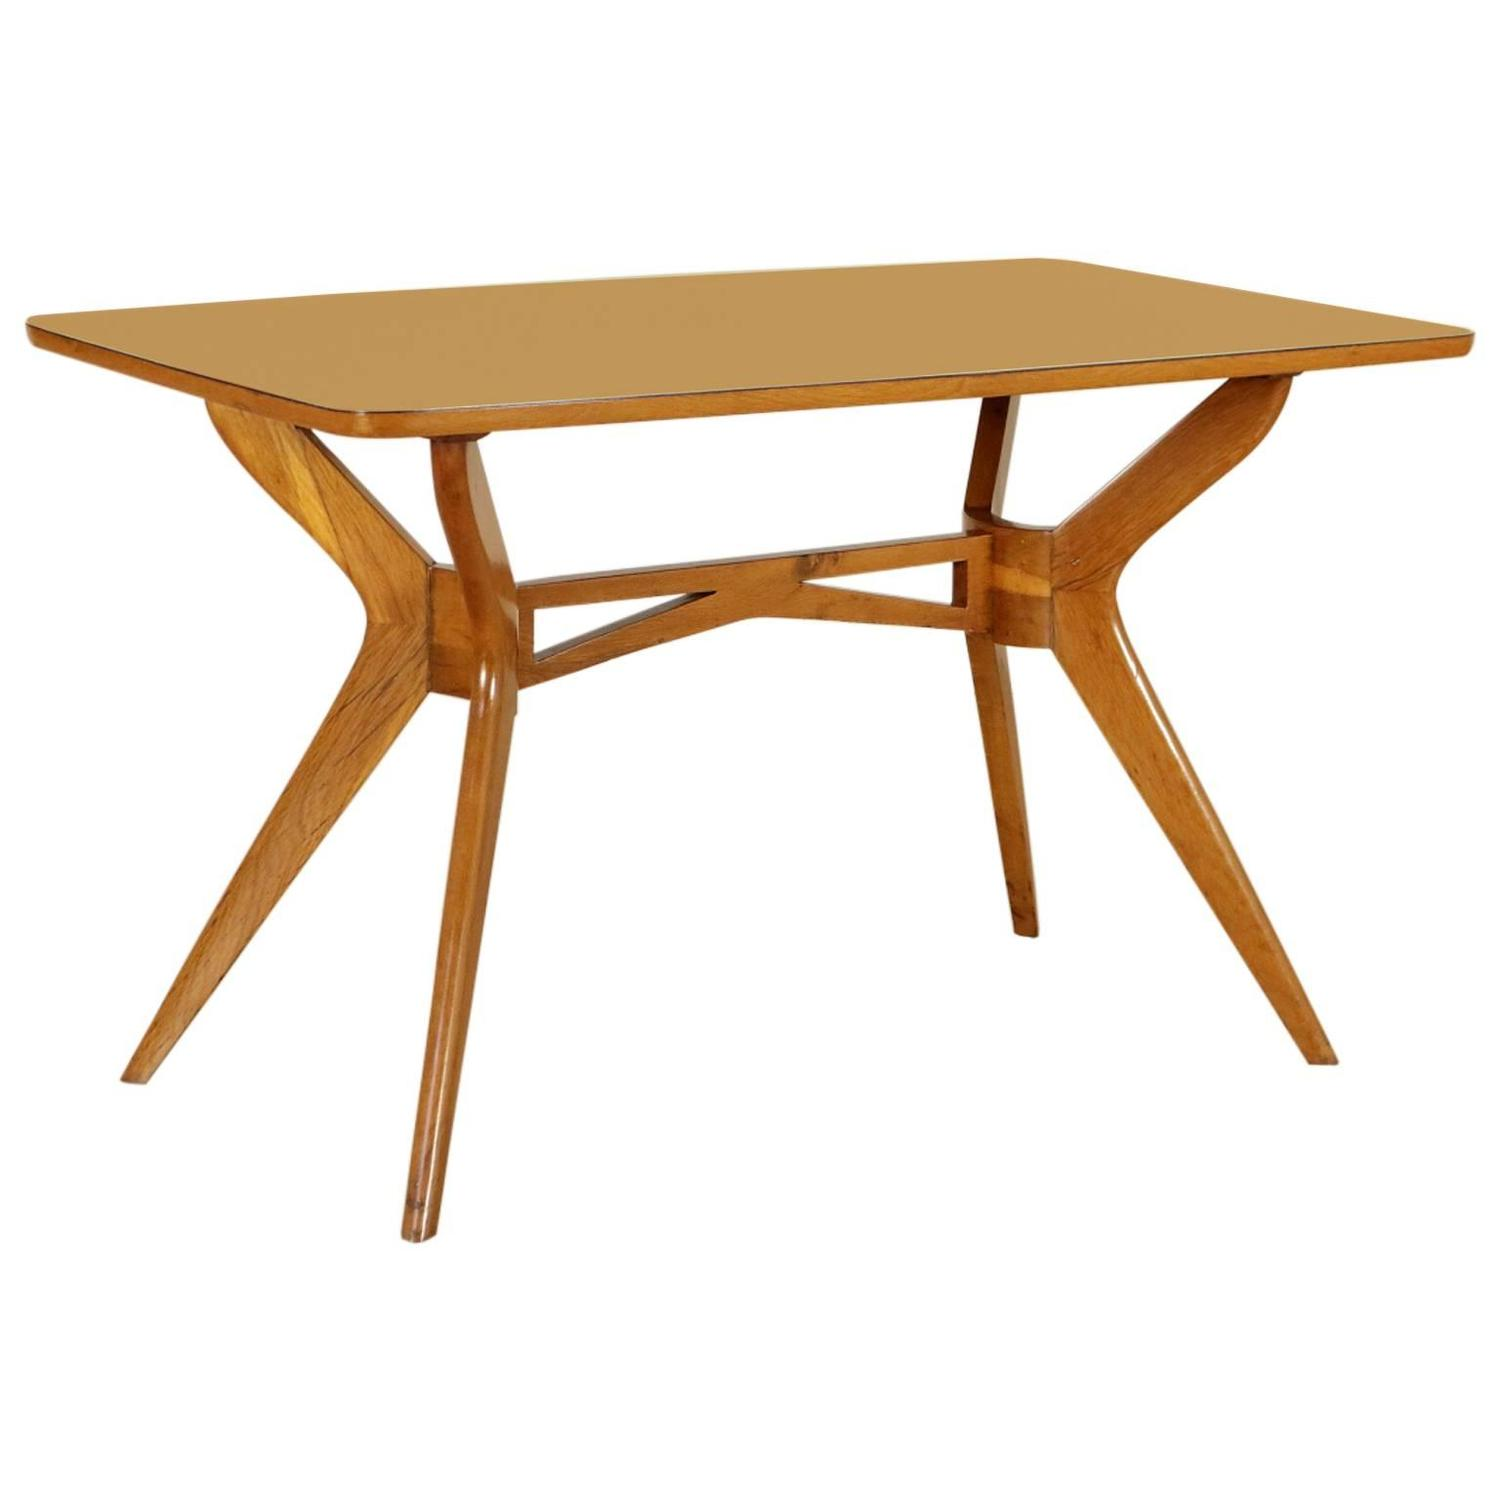 Beech and formica 1950s table manufactured in italy at 1stdibs for Table formica